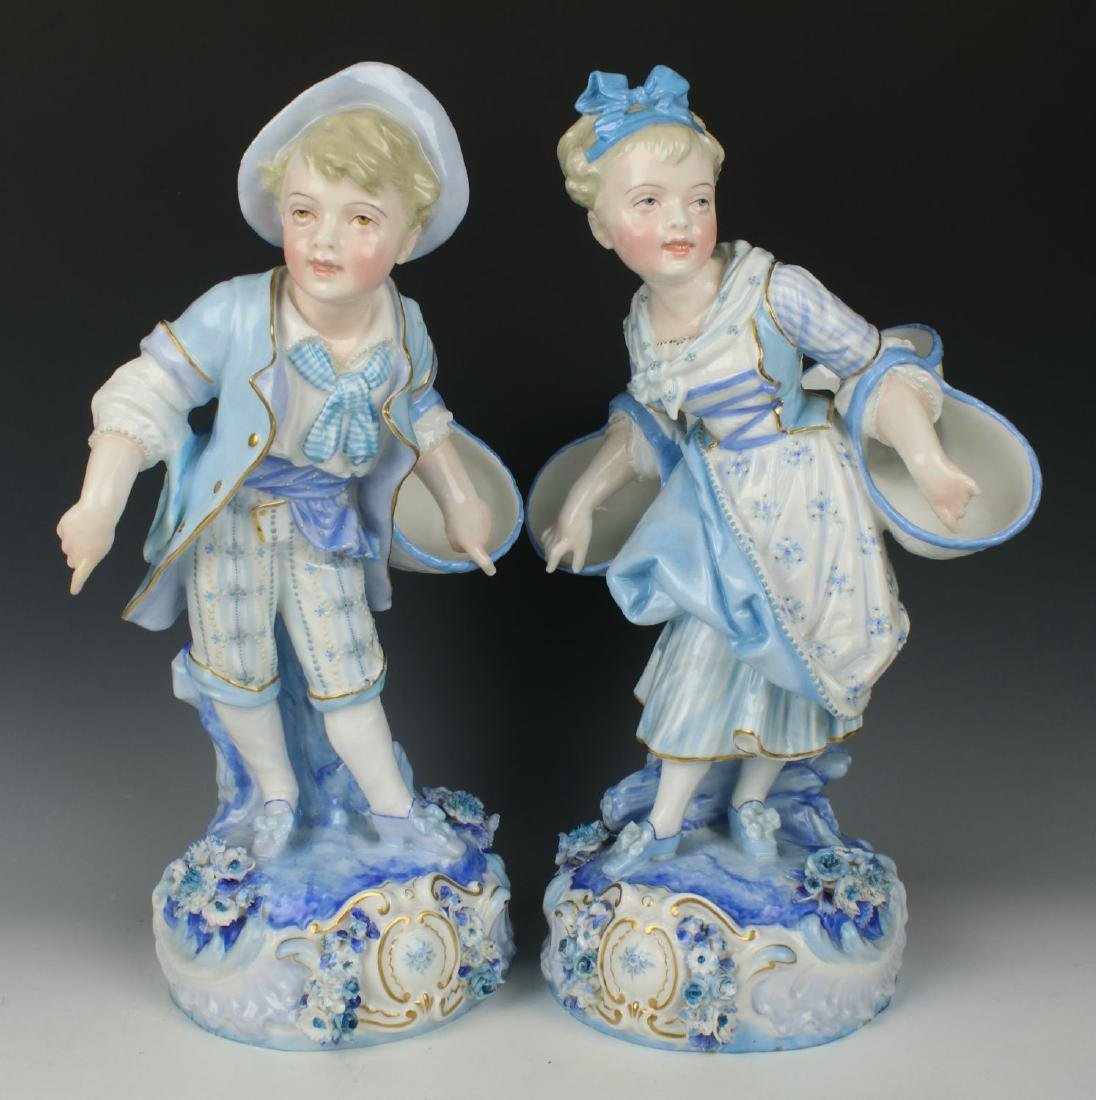 19C french Levy & Cie pair of figurines